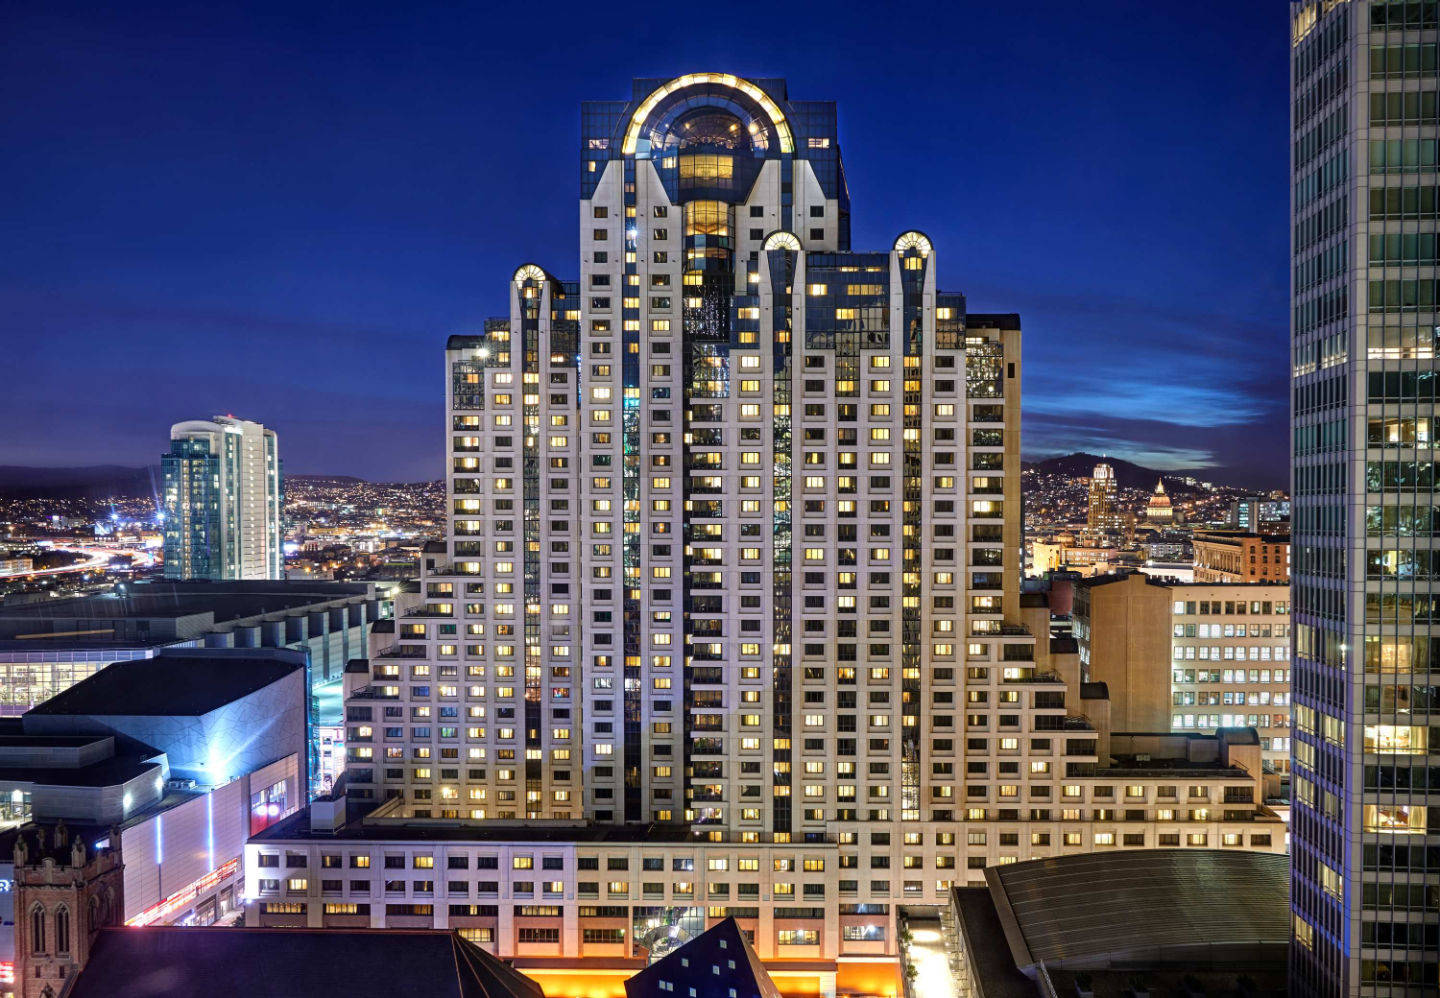 Stock image: San Francisco Marriott Marquis at night